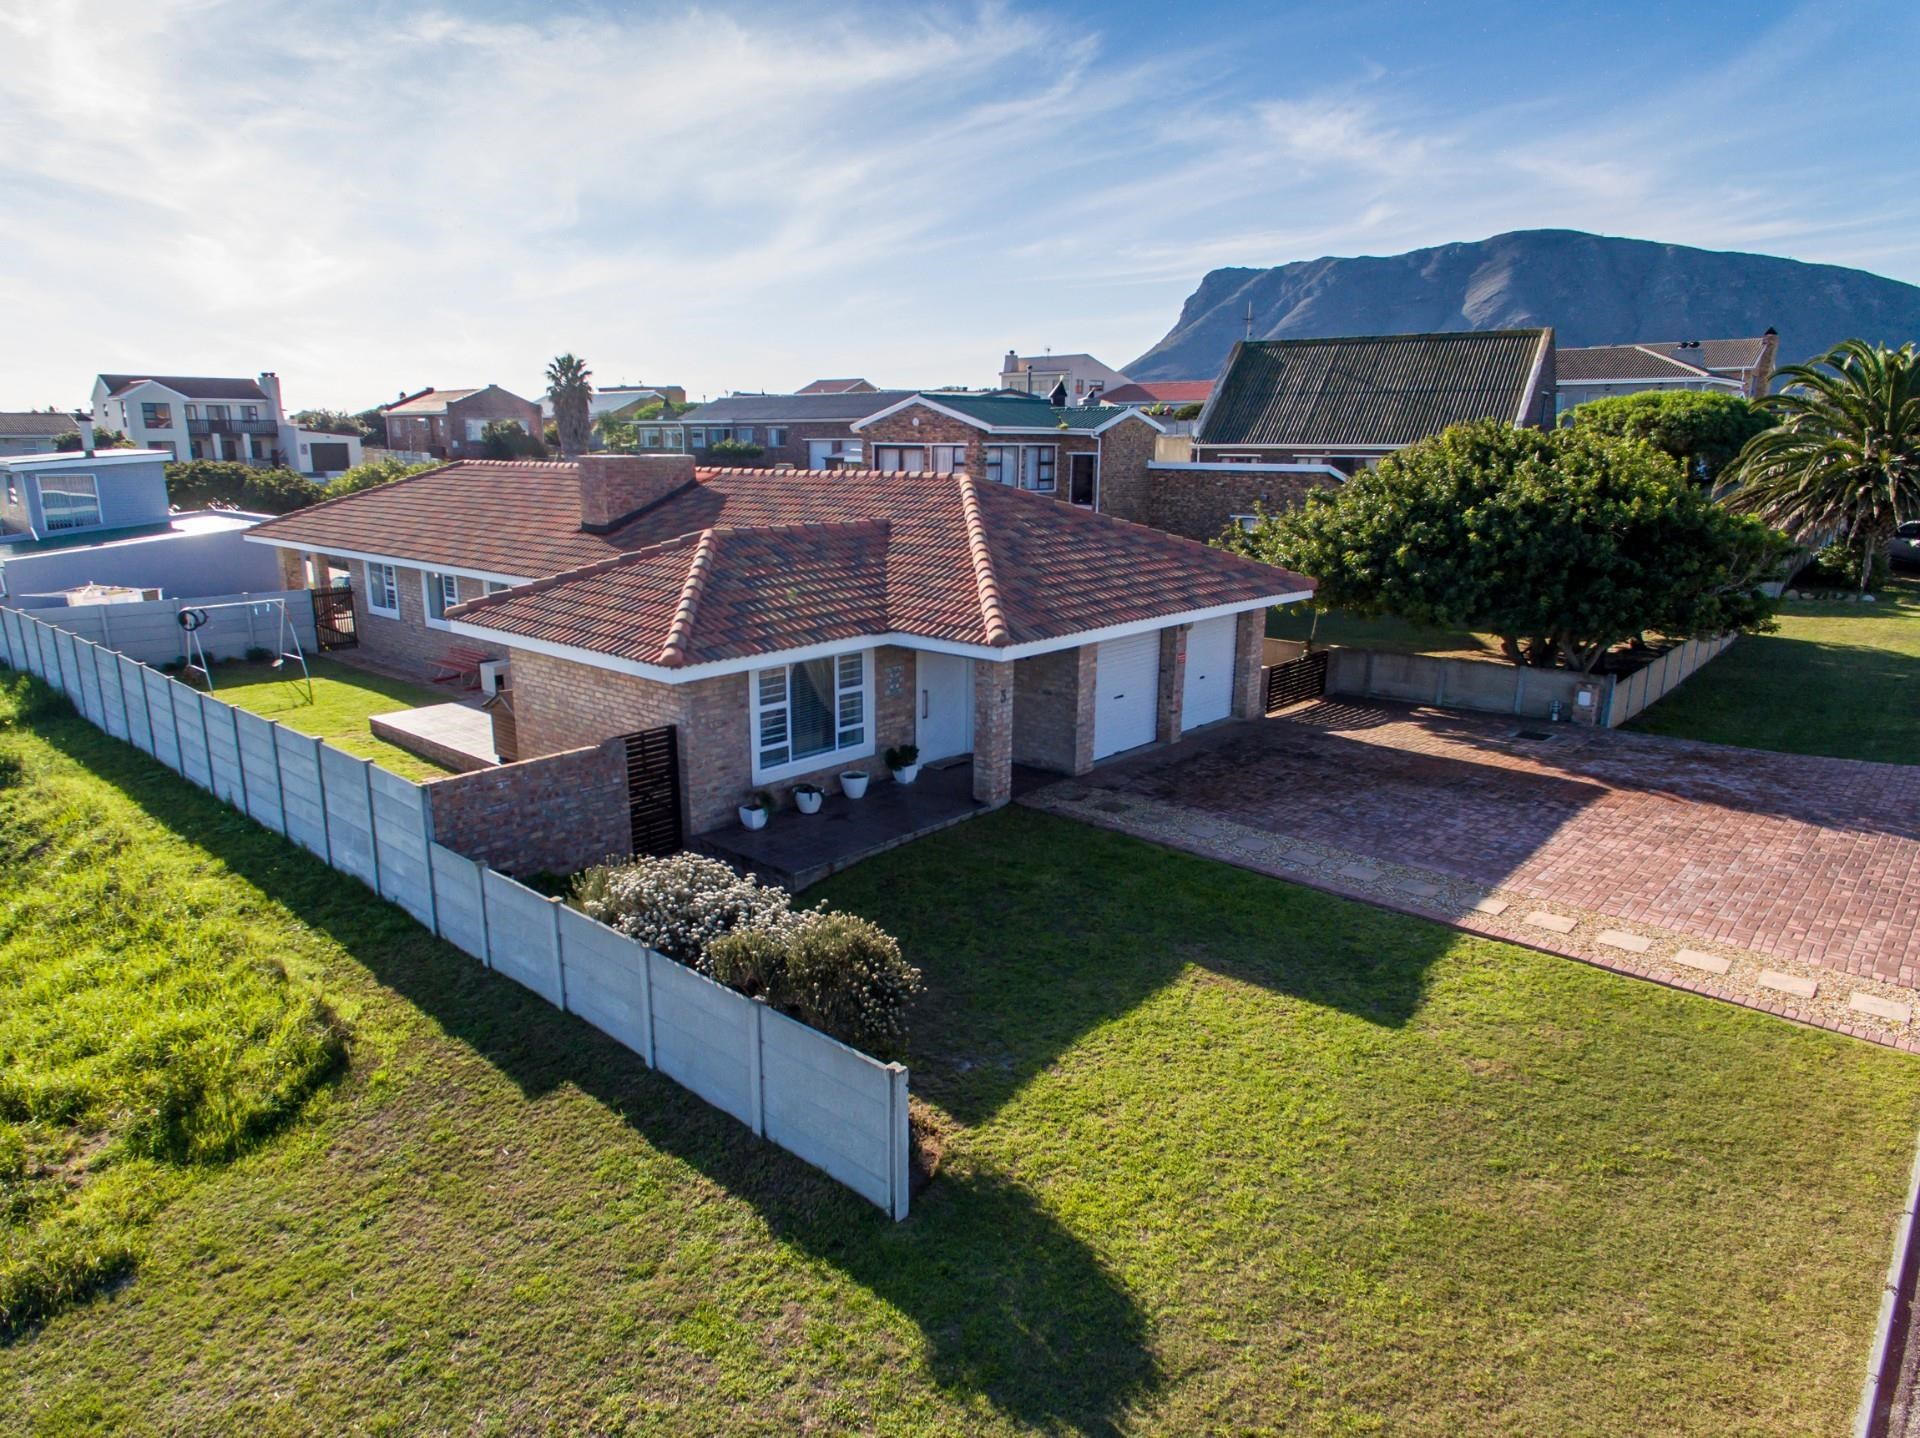 3 Bedroom House for Sale in Franskraal